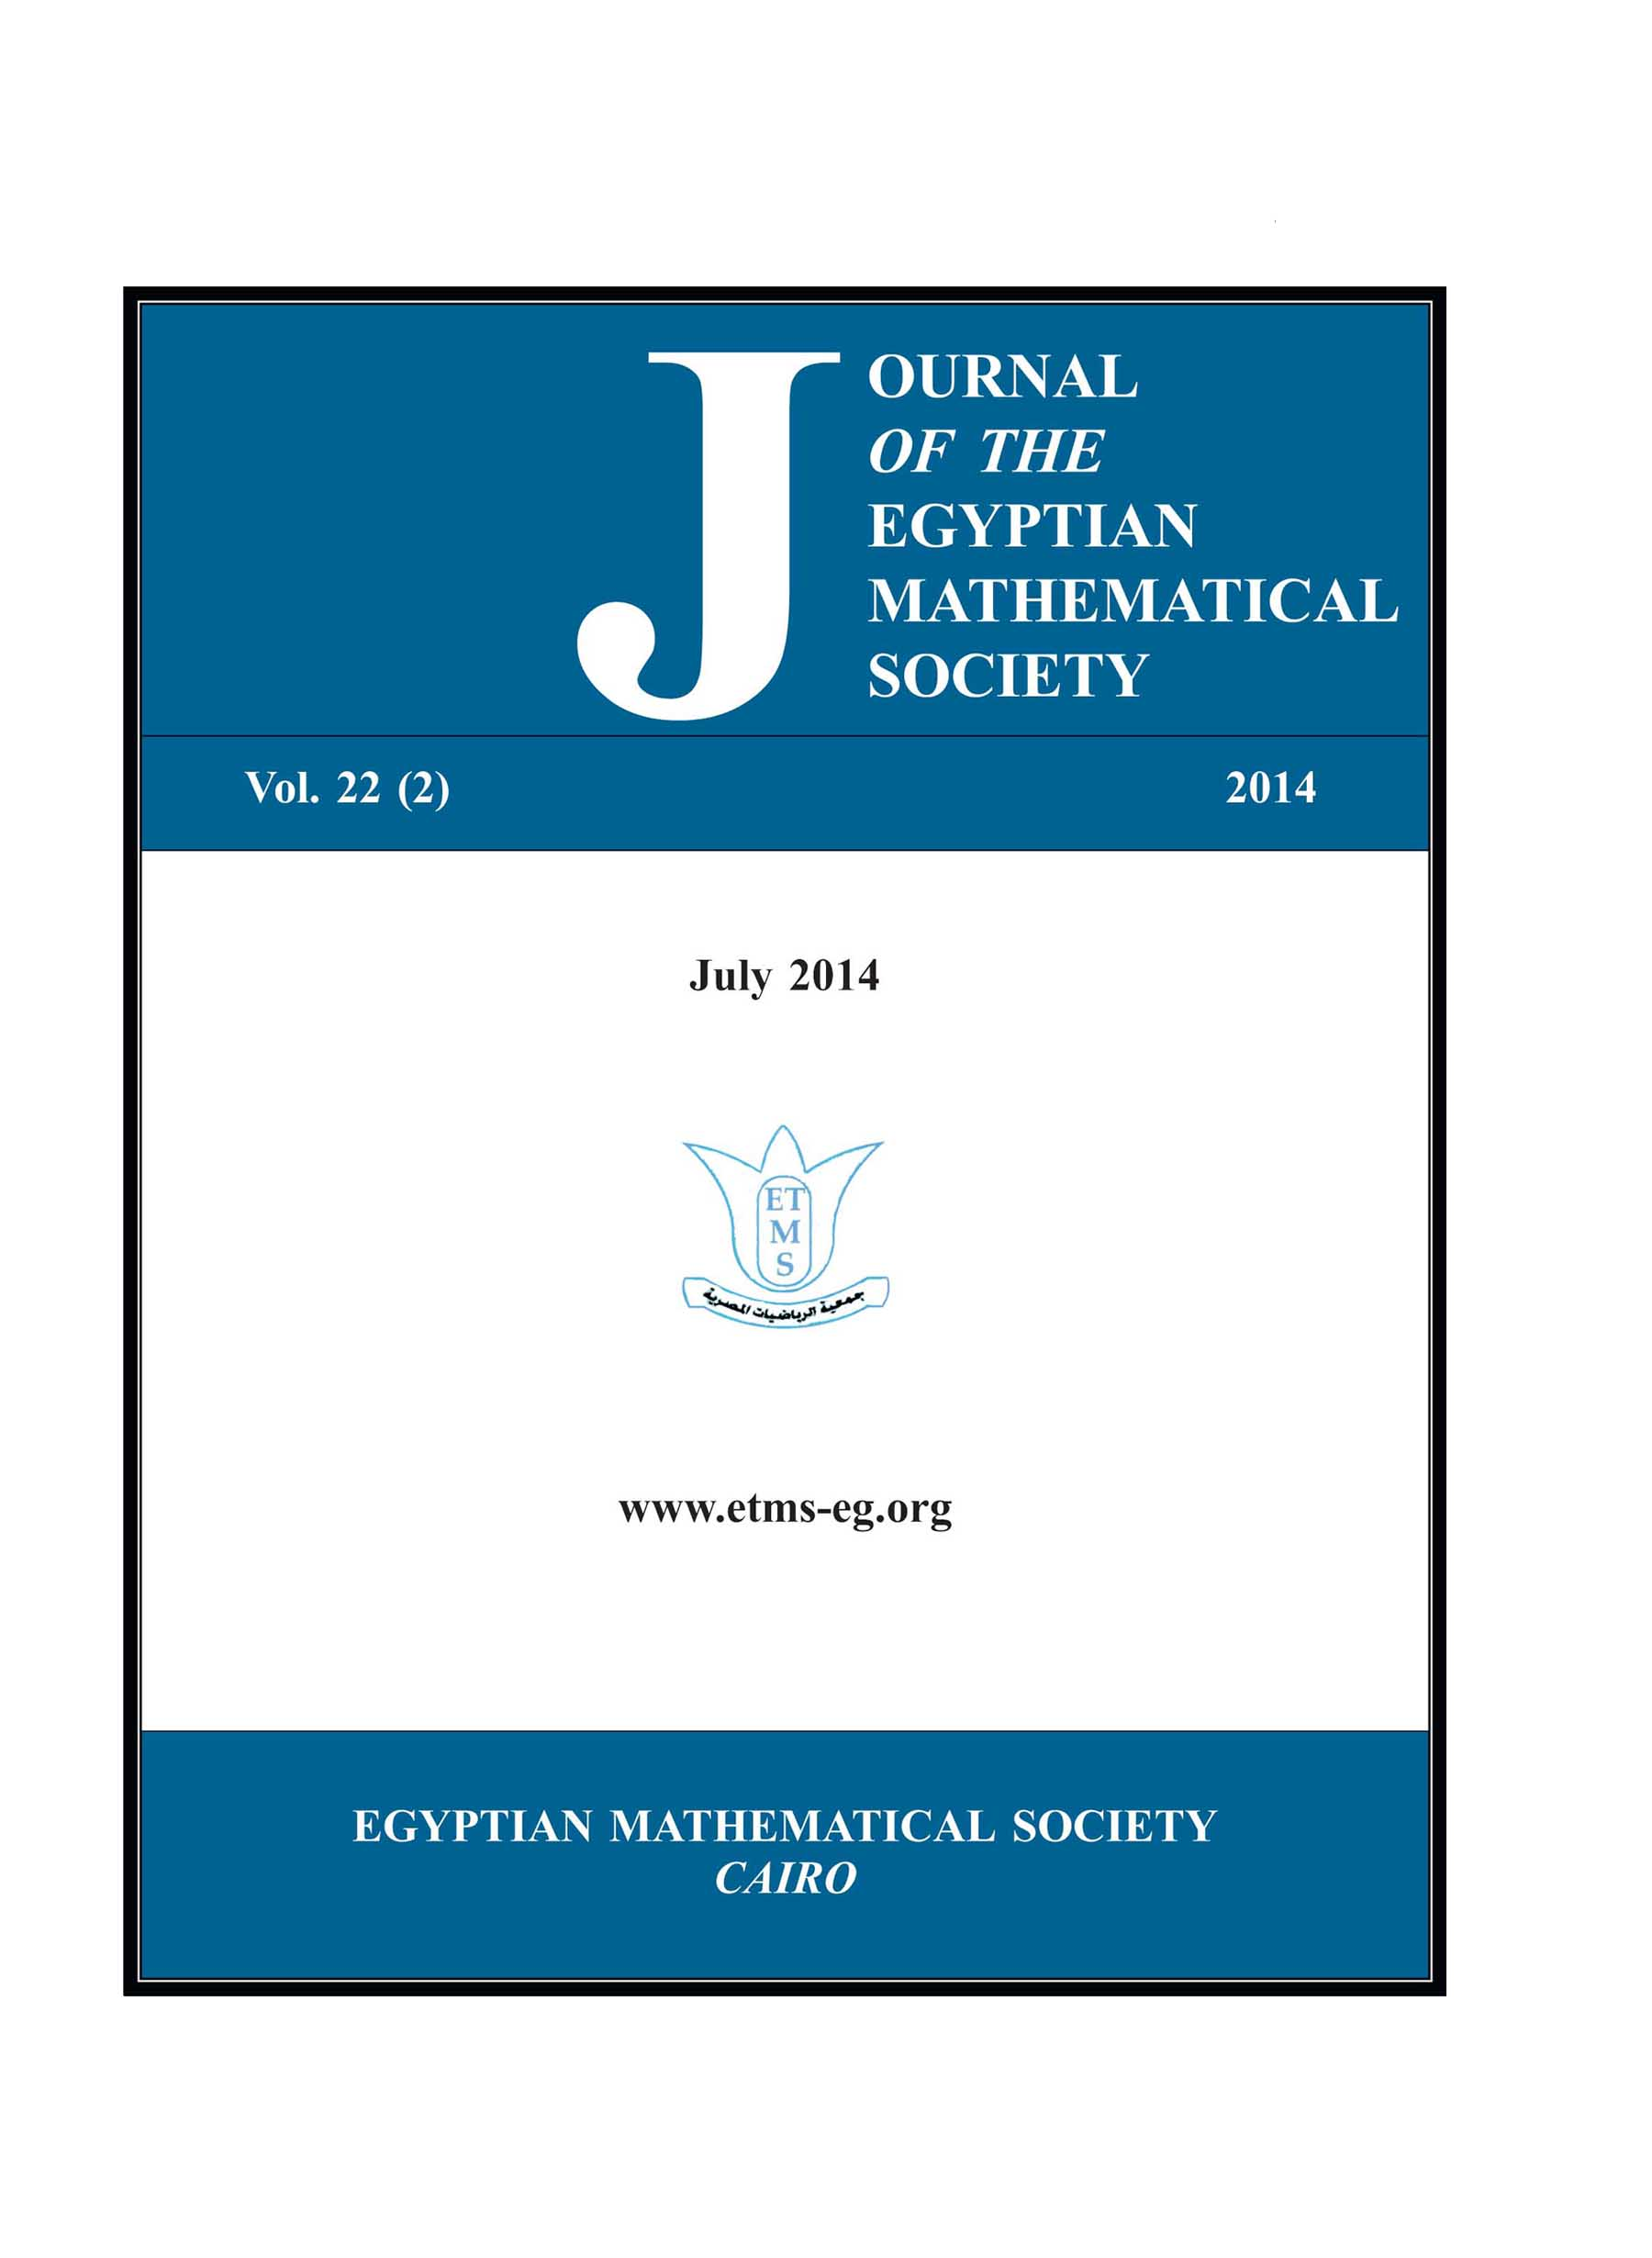 Journal of the Egyptian Mathematical Society